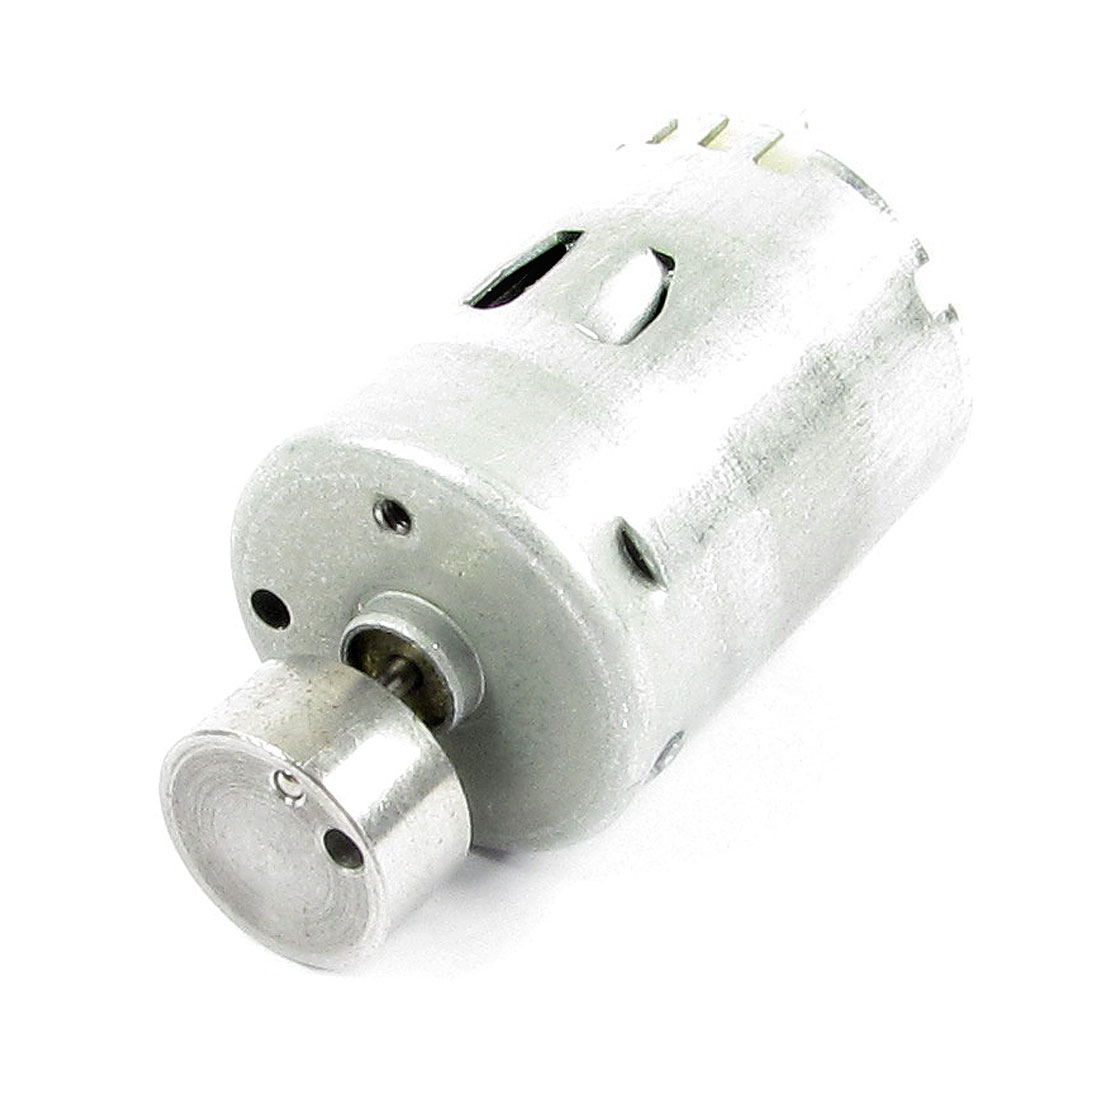 Magnetic-Vibrating-Vibration-Micro-Motor-35000RPM-6VDC